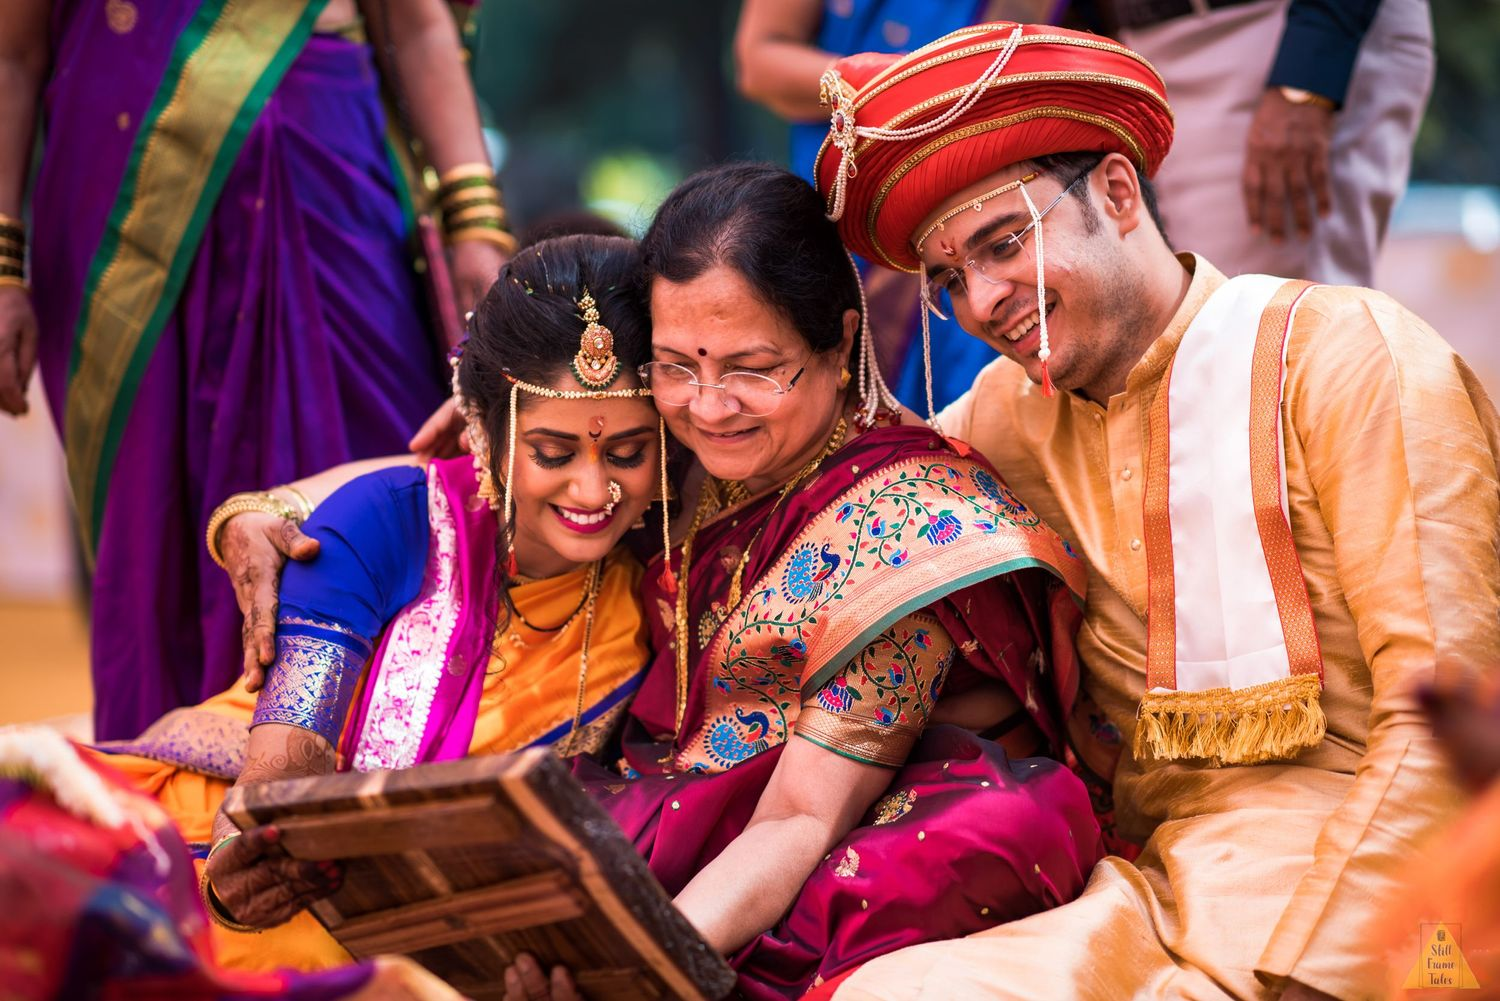 Mother cuddling couple and watching a reflection in the mirror while performing wedding day ritual